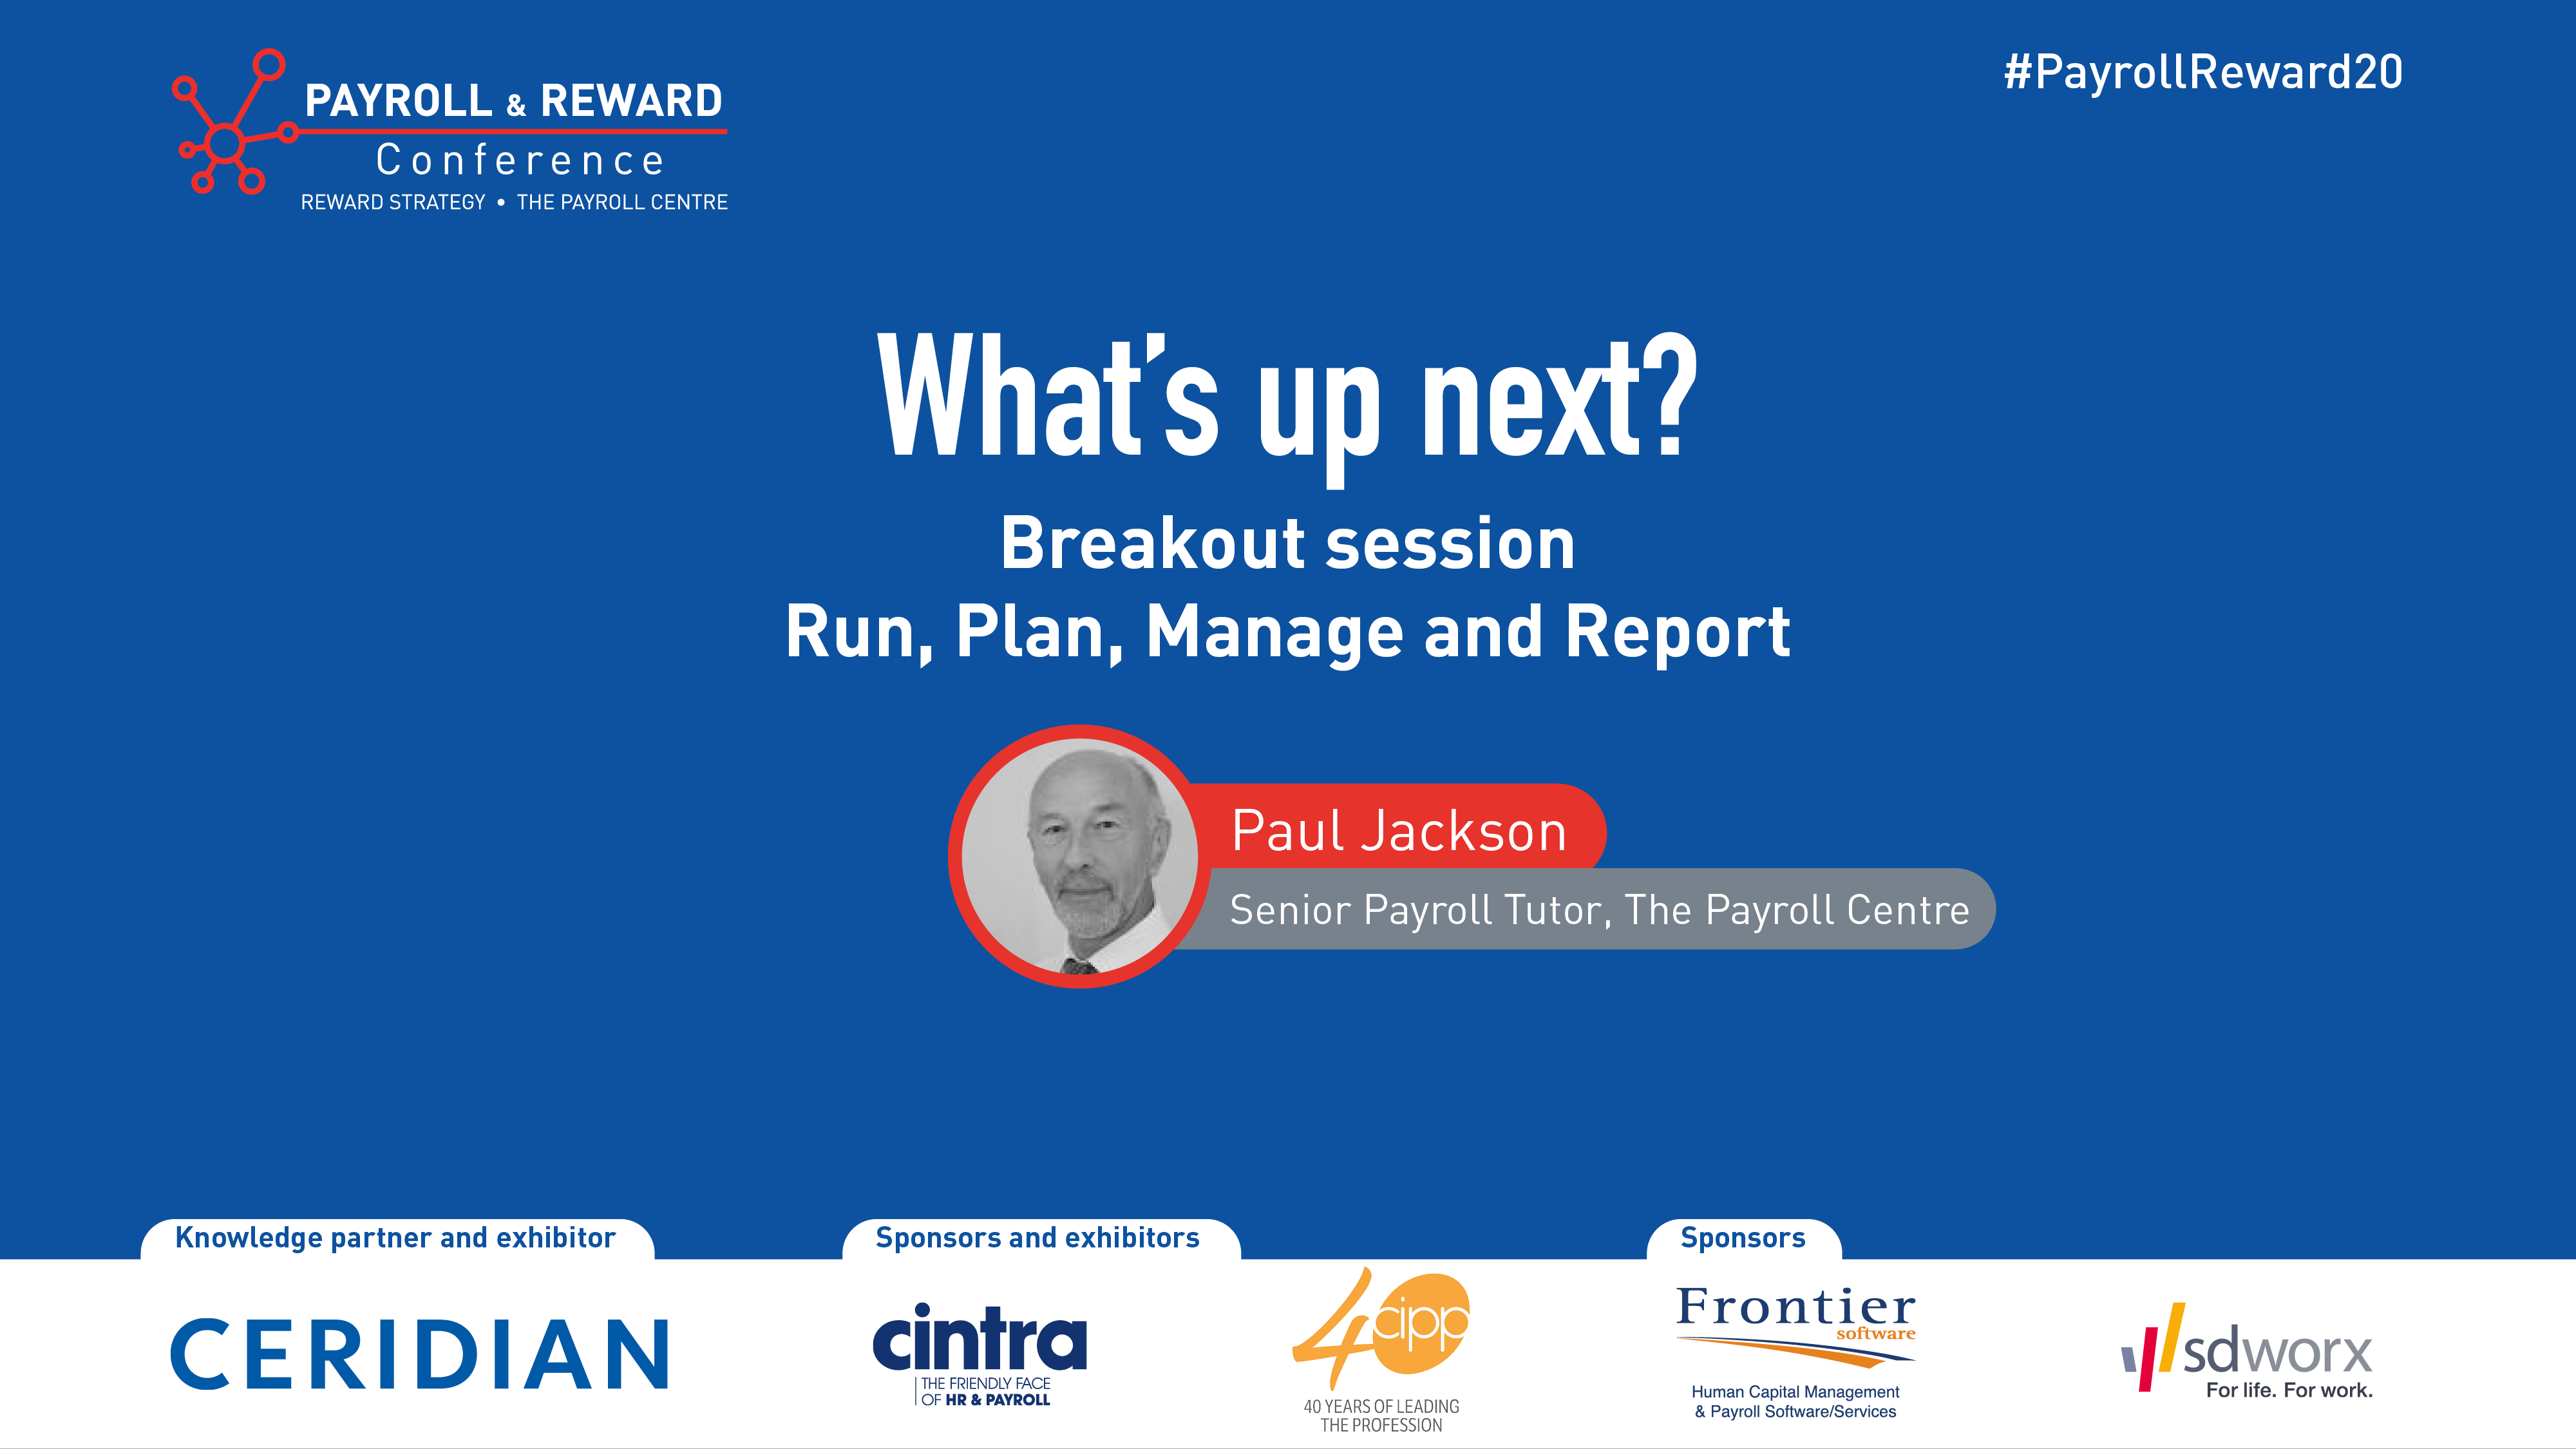 Payroll & Reward Conference - Run, plan, manage and report Paul Jackson, The Payroll Centre